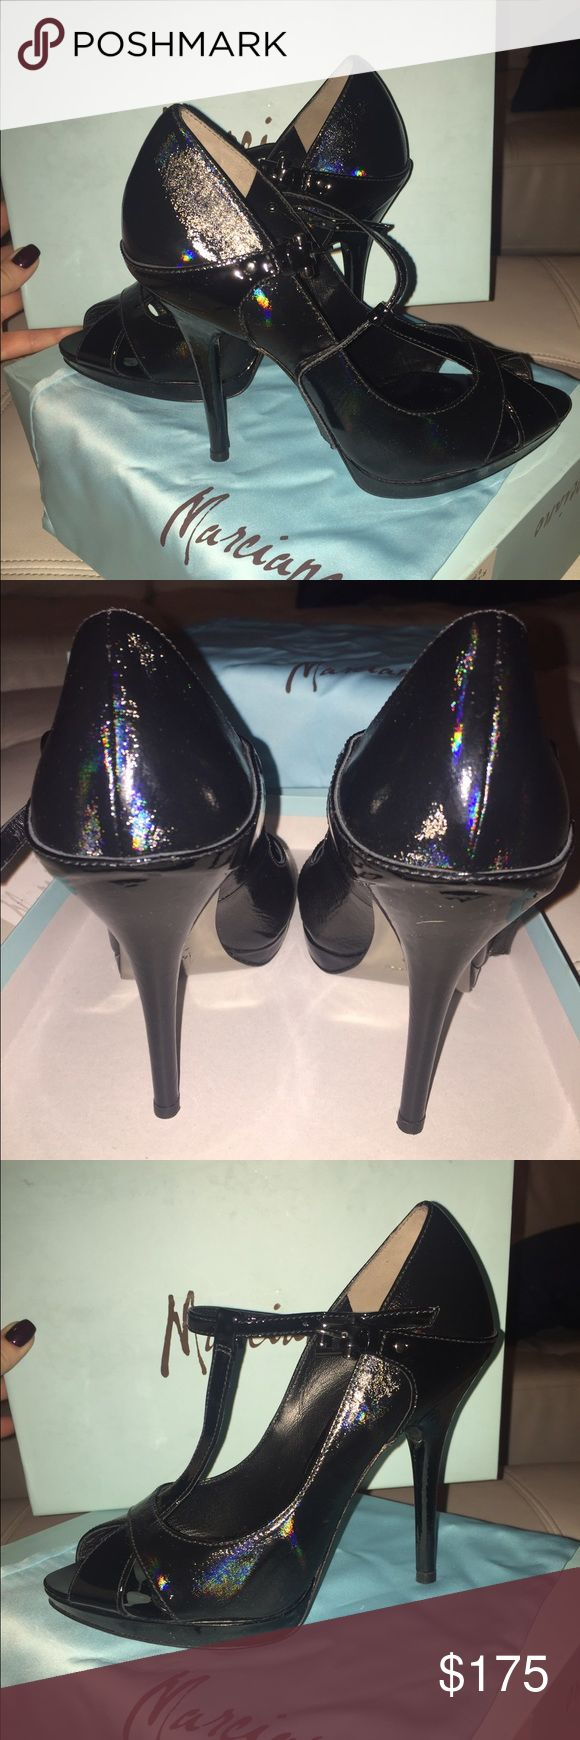 Marciano Black T-Strap Stiletto High Heels Marciano Black T-Strap Stiletto High Heels.  Never been worn, any mark on sole would be from in the store. Have receipt and box, cloth bag, etc. New condition with no scratches. Patent leather and almost had a prismatic hue on the heel which is cool how it reflects the light. I've never worn these.  If interested, make me an offer. Marciano Shoes Heels